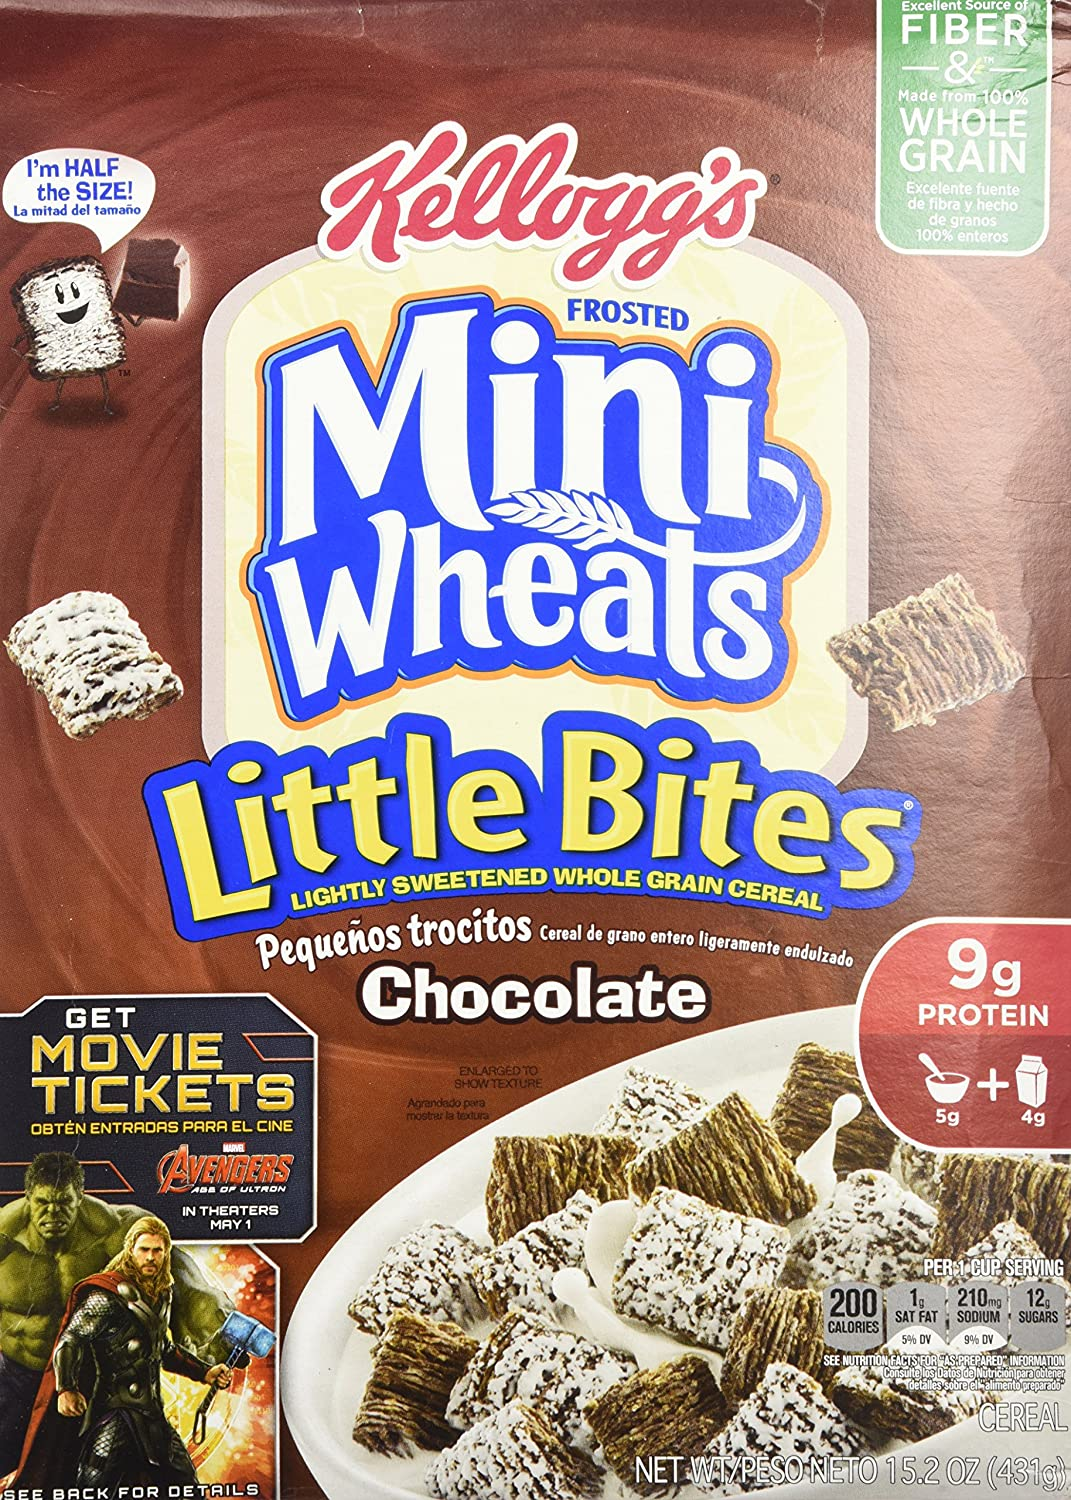 Amazon.com: Kelloggs Frosted Mini Wheats, Chocolate, Little Bites Cereal, 15.2 Ounce Box (4-pack): Breakfast Cereals